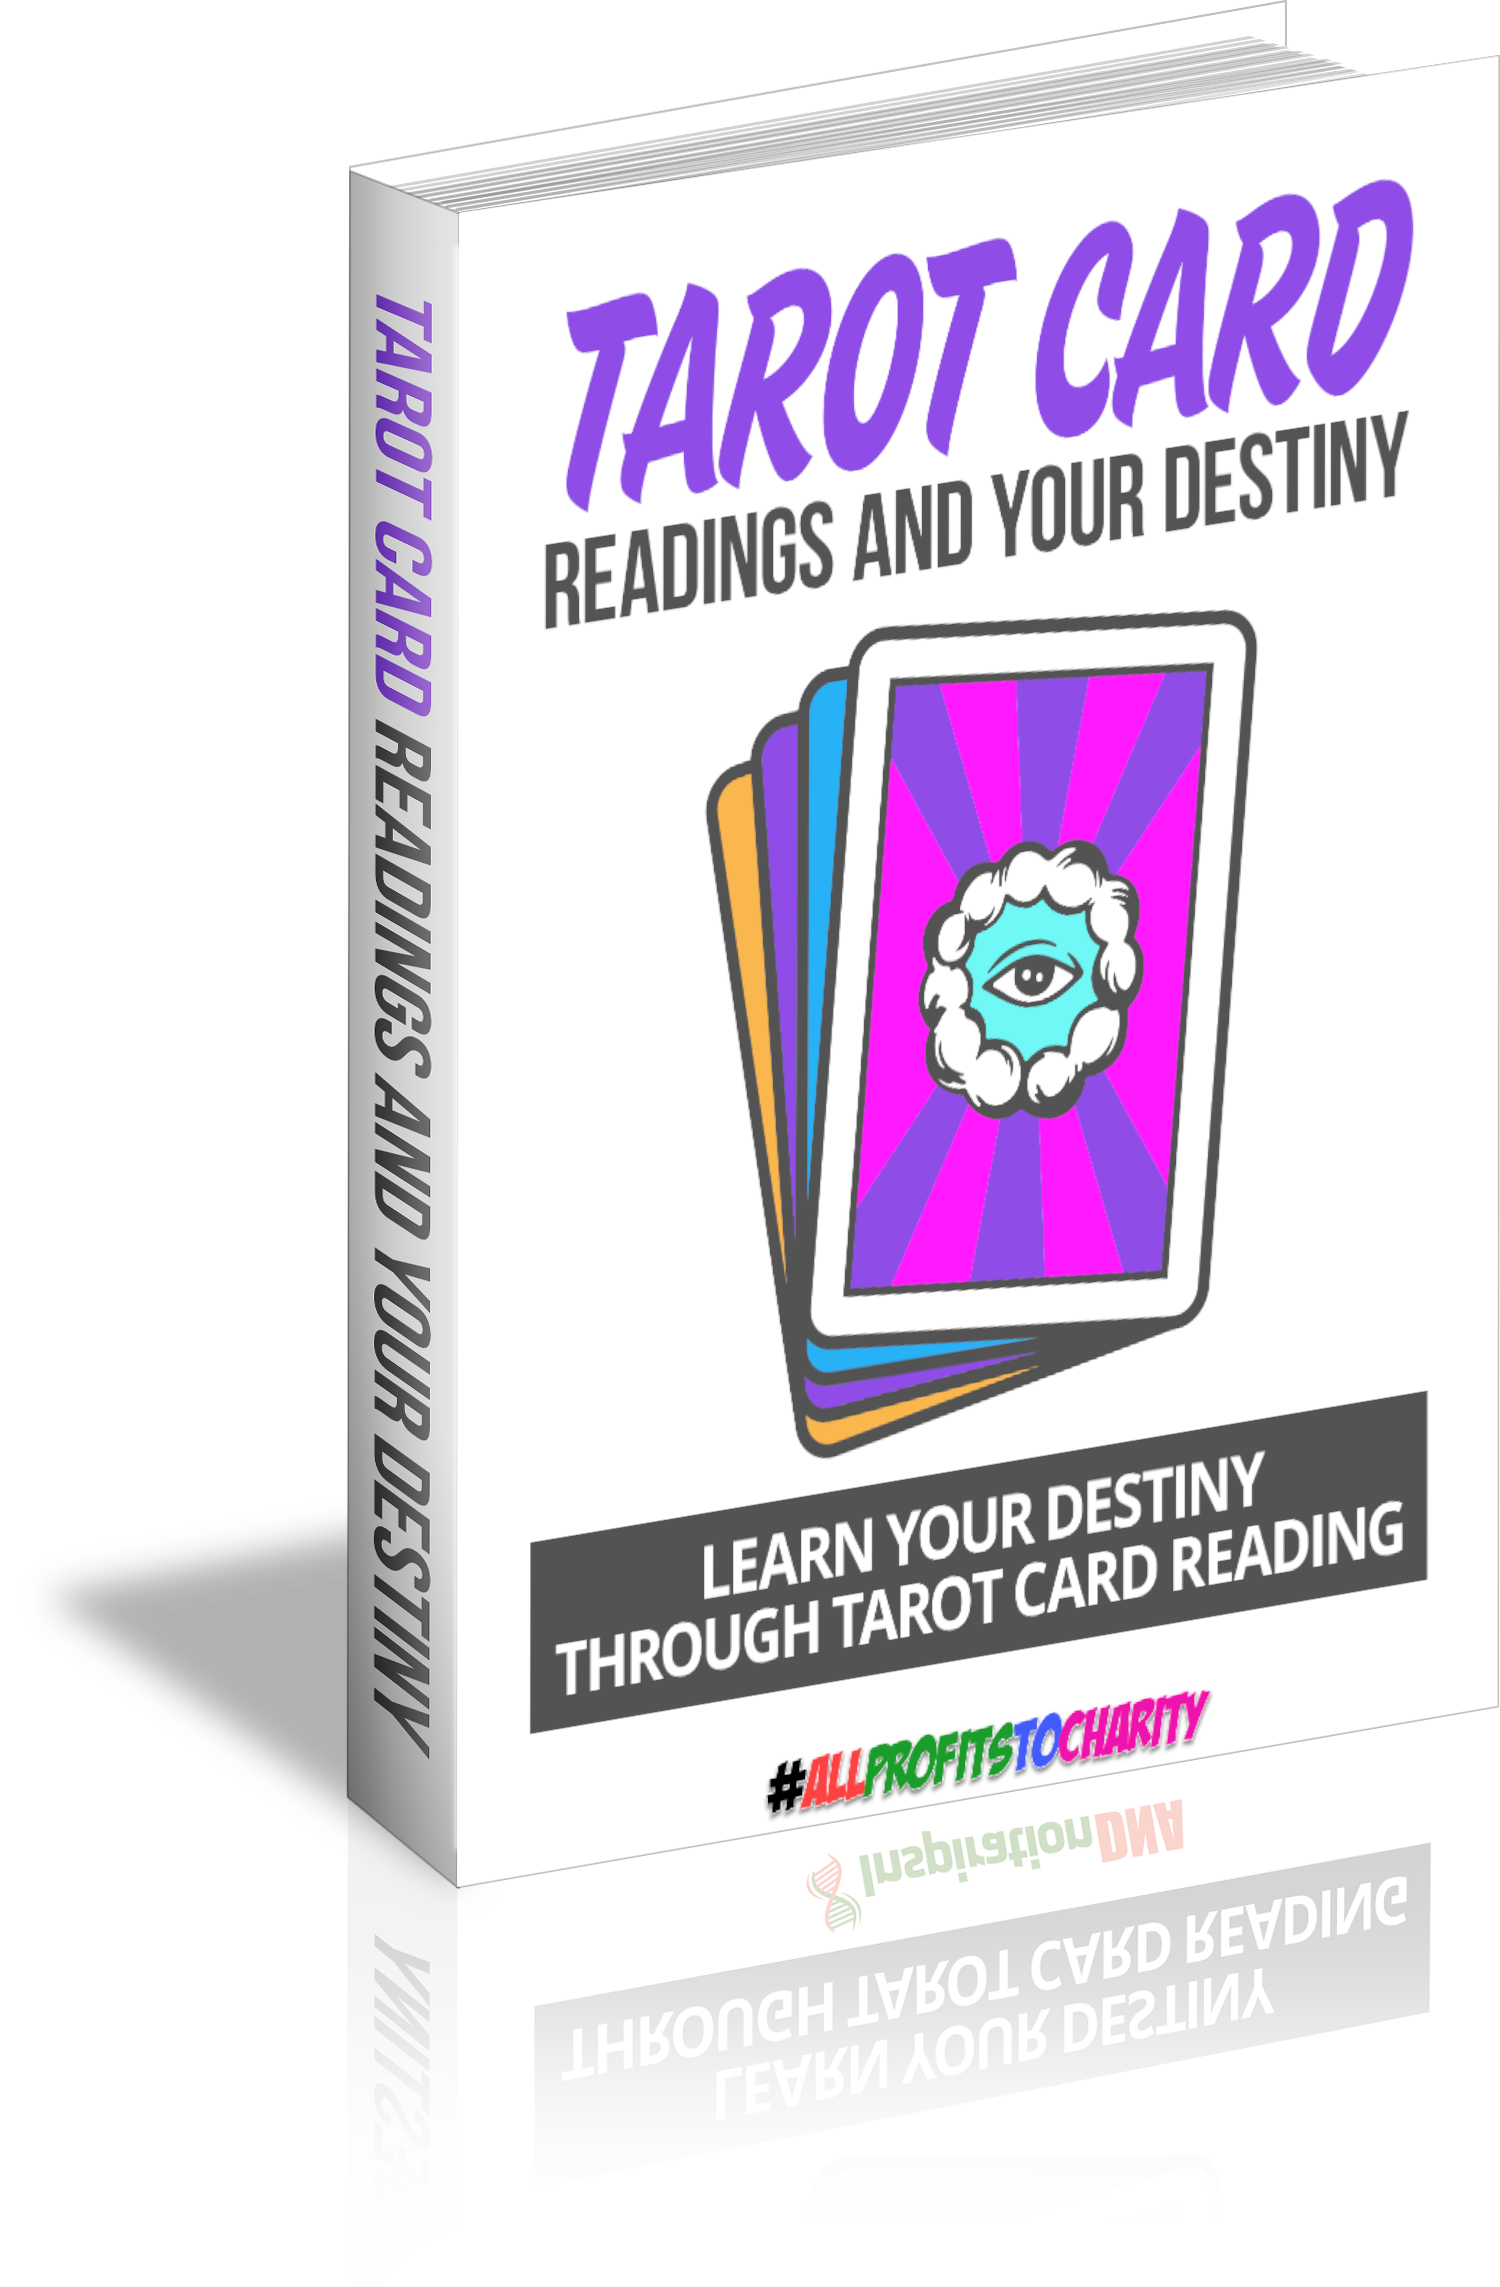 Tarot Card Readings And Your Destiny cover